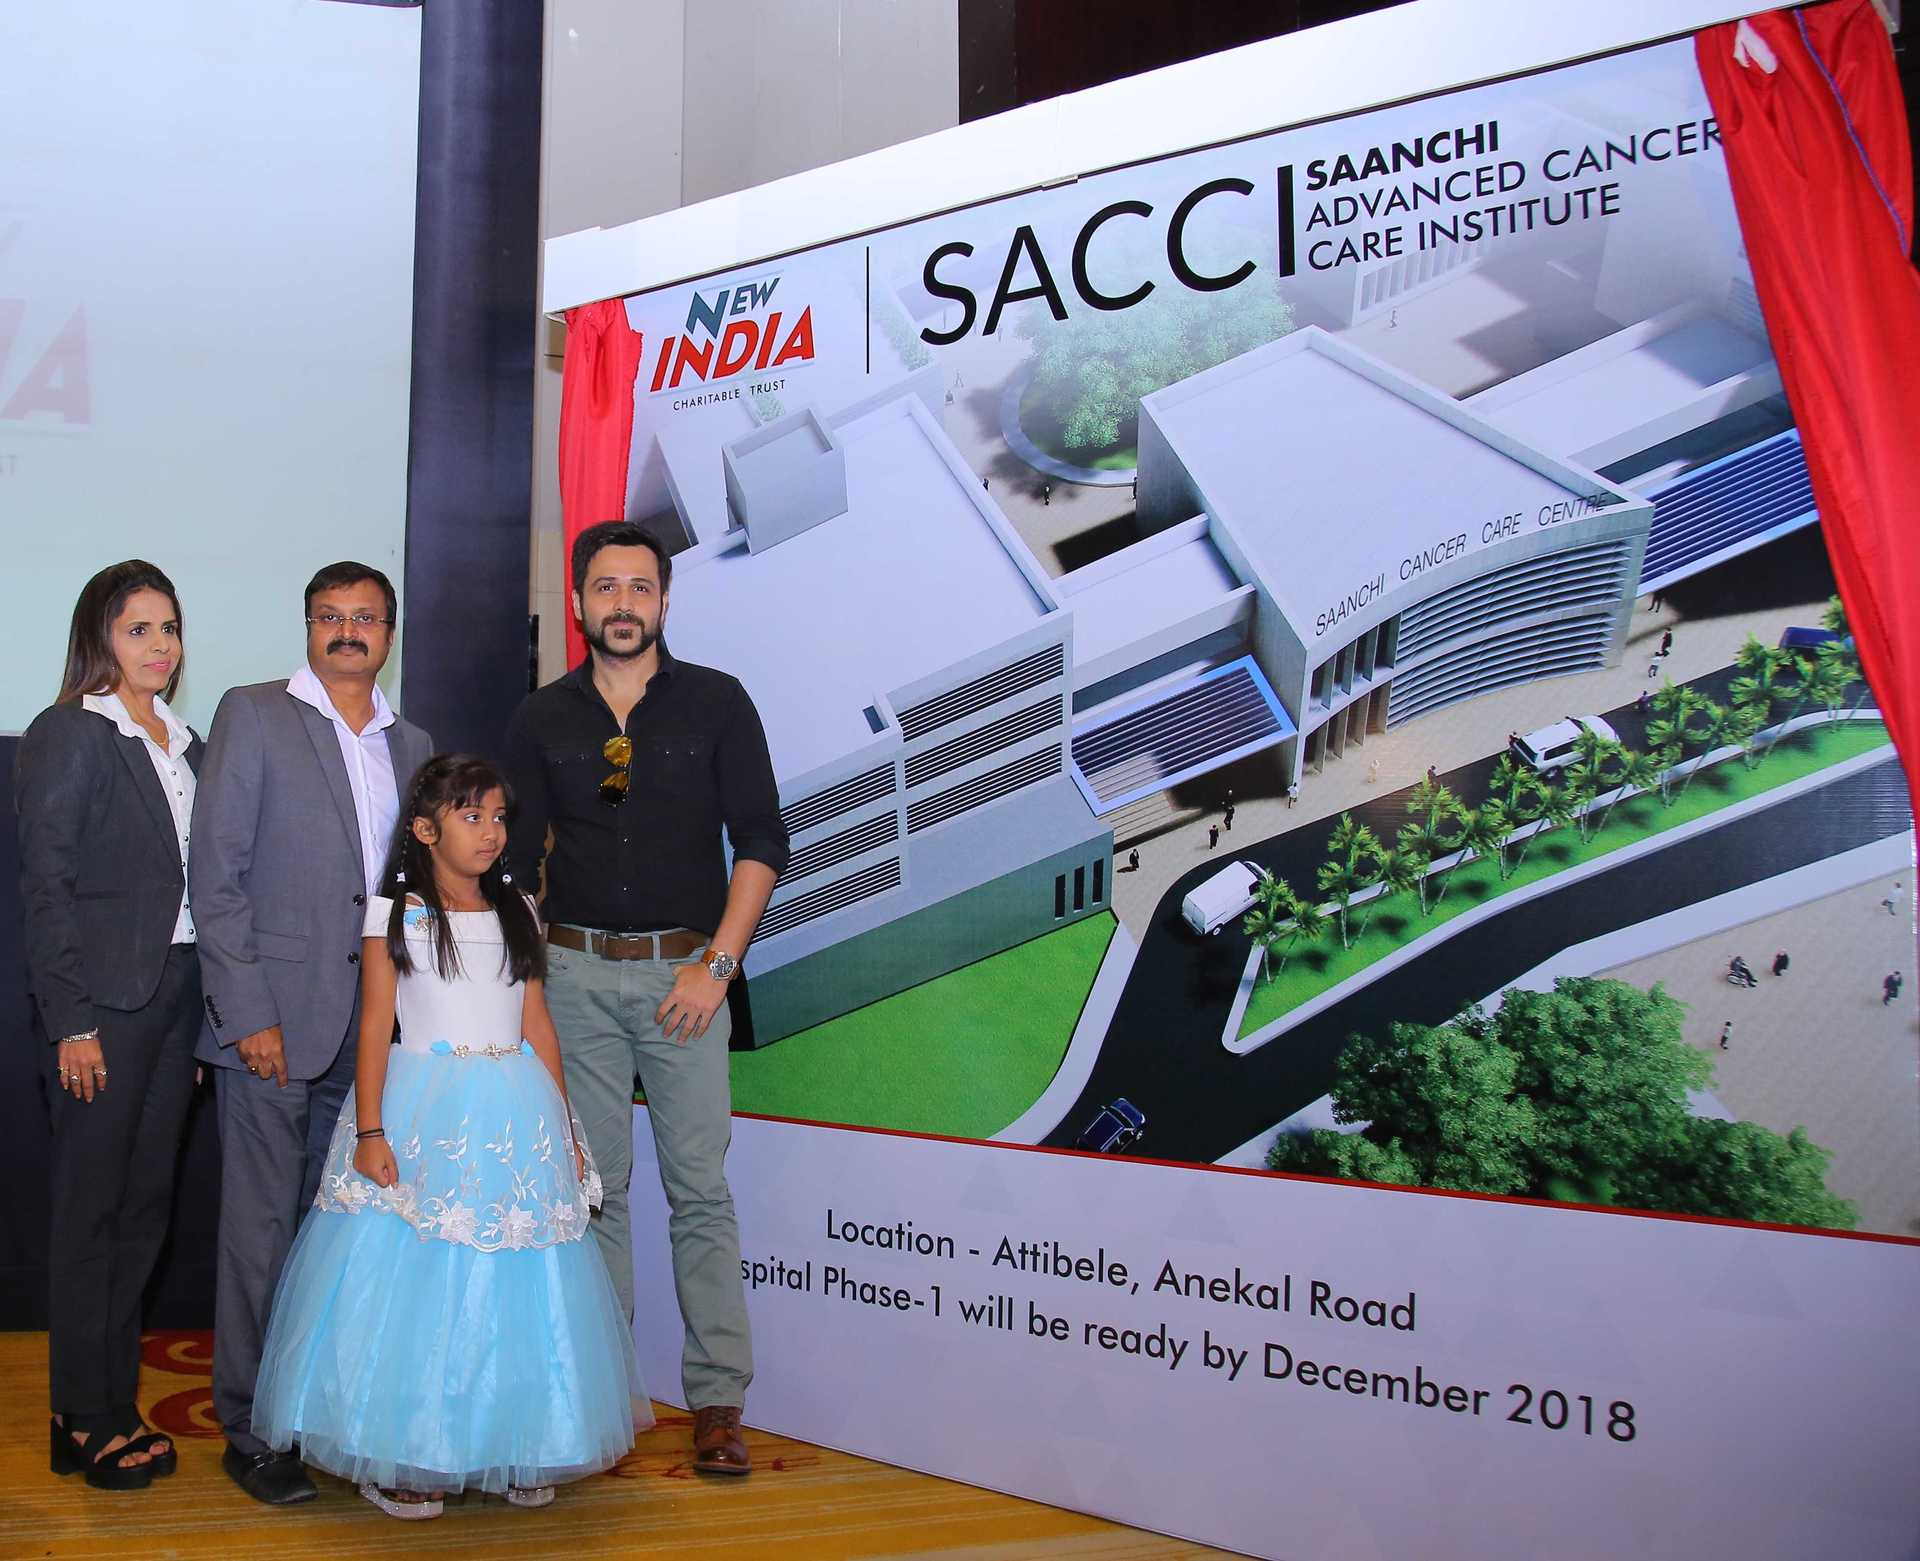 Itika Singh - Vijay Tata with Amrita Tata and Emraan Hashmi at the launch of SACCI